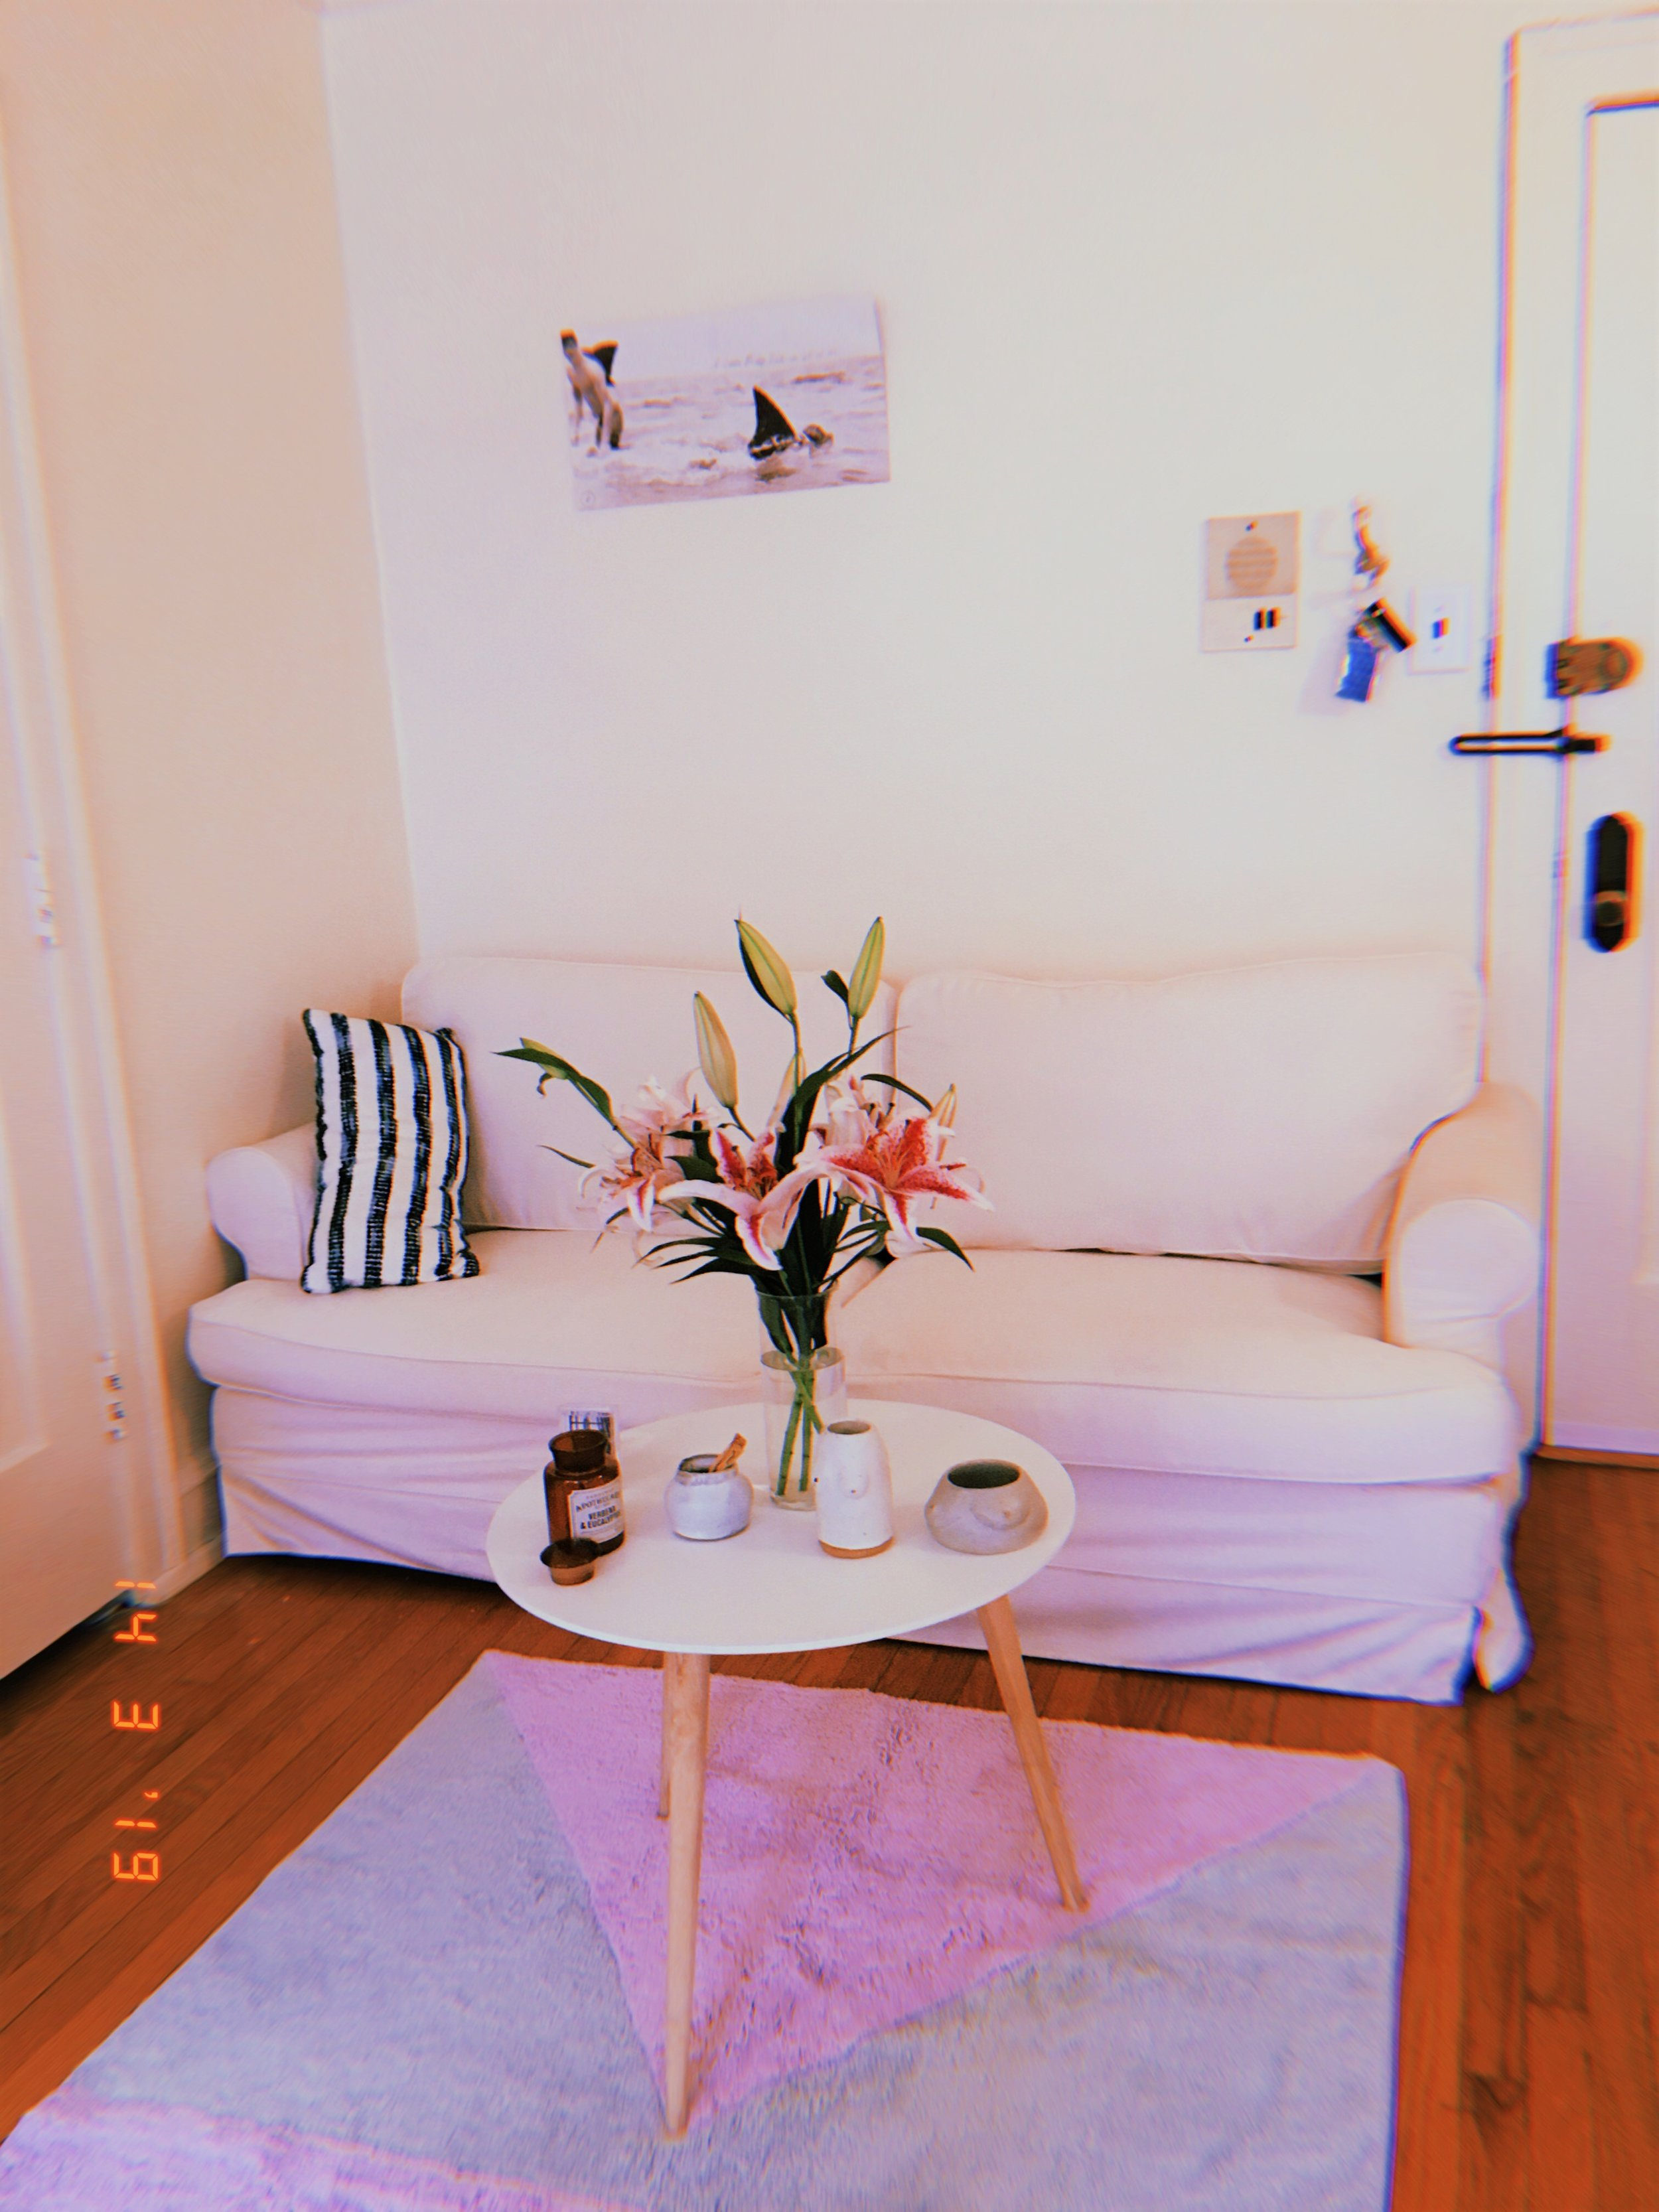 After the Edgewater studio I moved to Hyde Park in 2018. This is where I currently live and I love it.